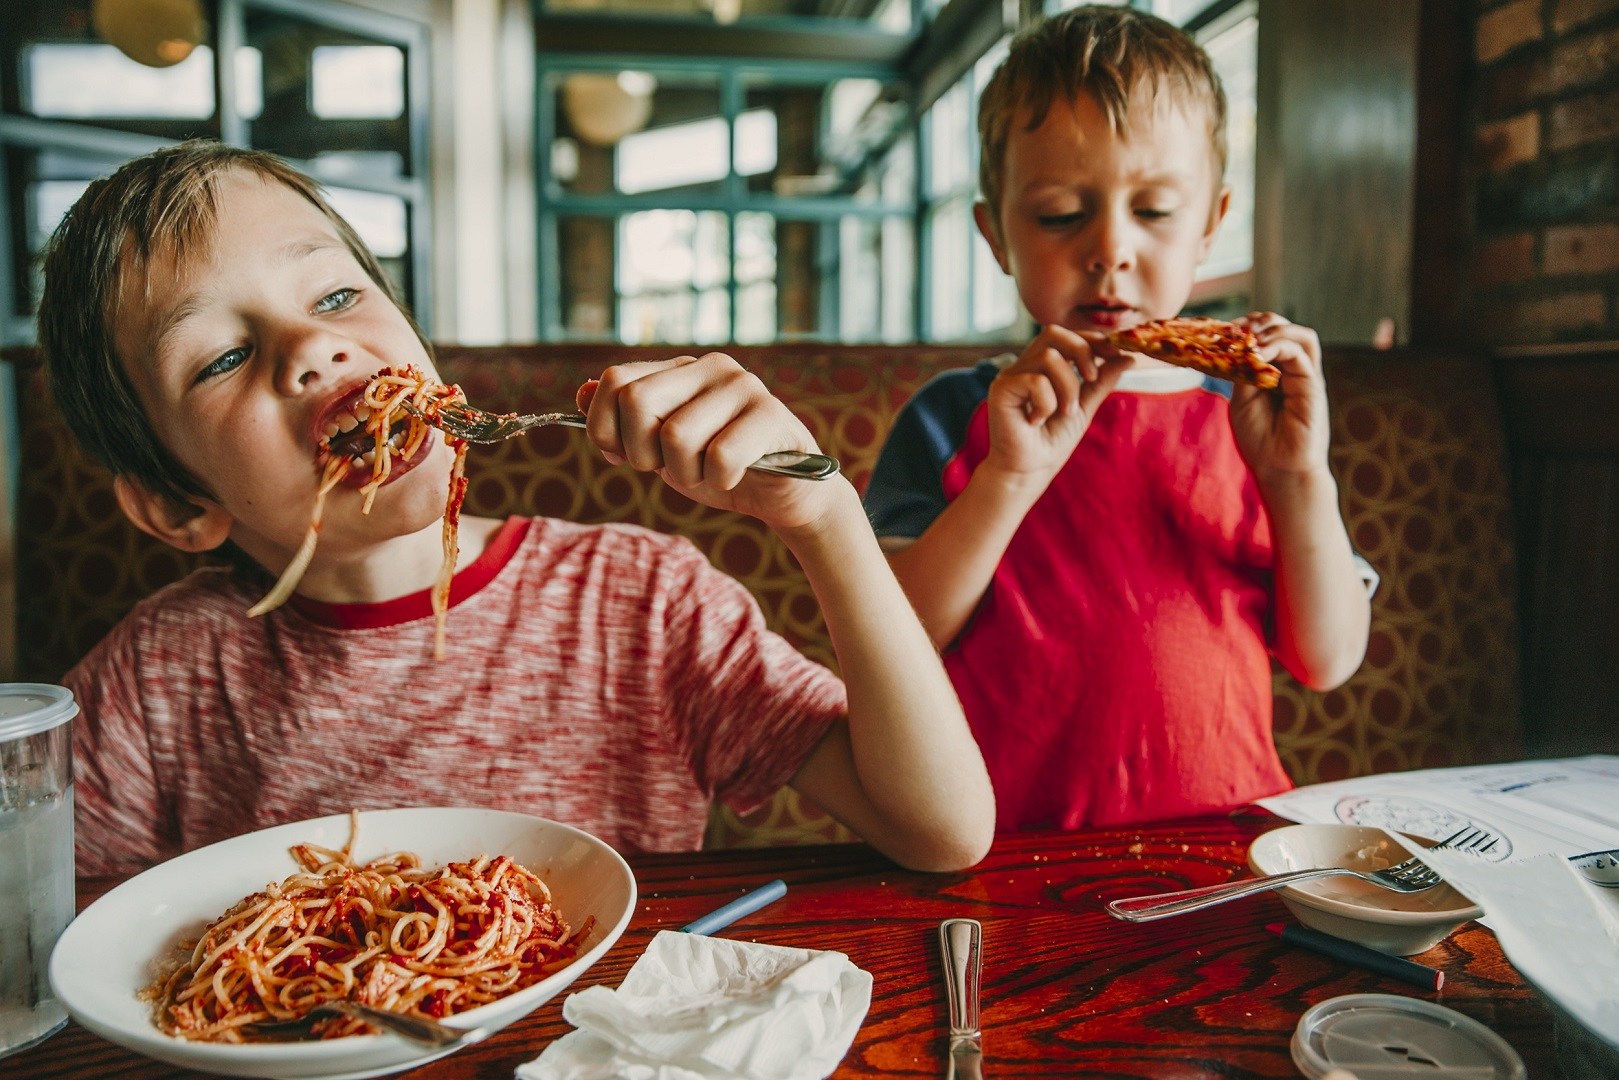 Two Boys Eating Messy In Restaurant Pasta and Pizza